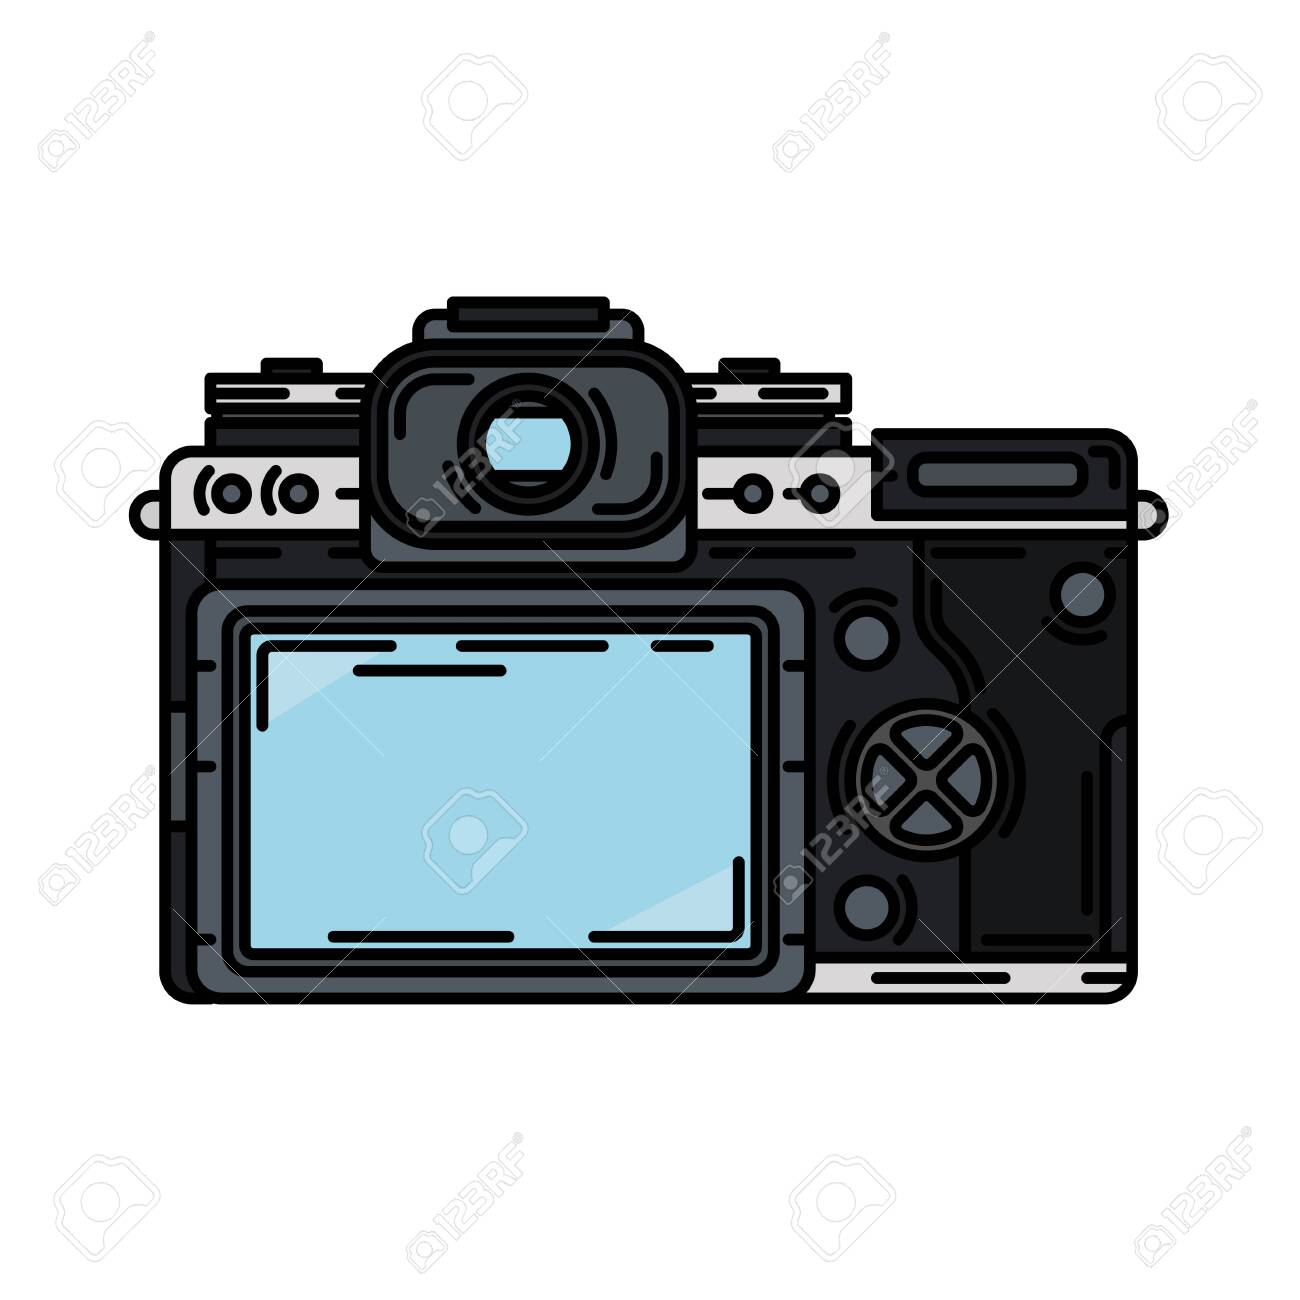 Color Vector Icon With Digital Slr Professional Camera Photography Royalty Free Cliparts Vectors And Stock Illustration Image 127031183